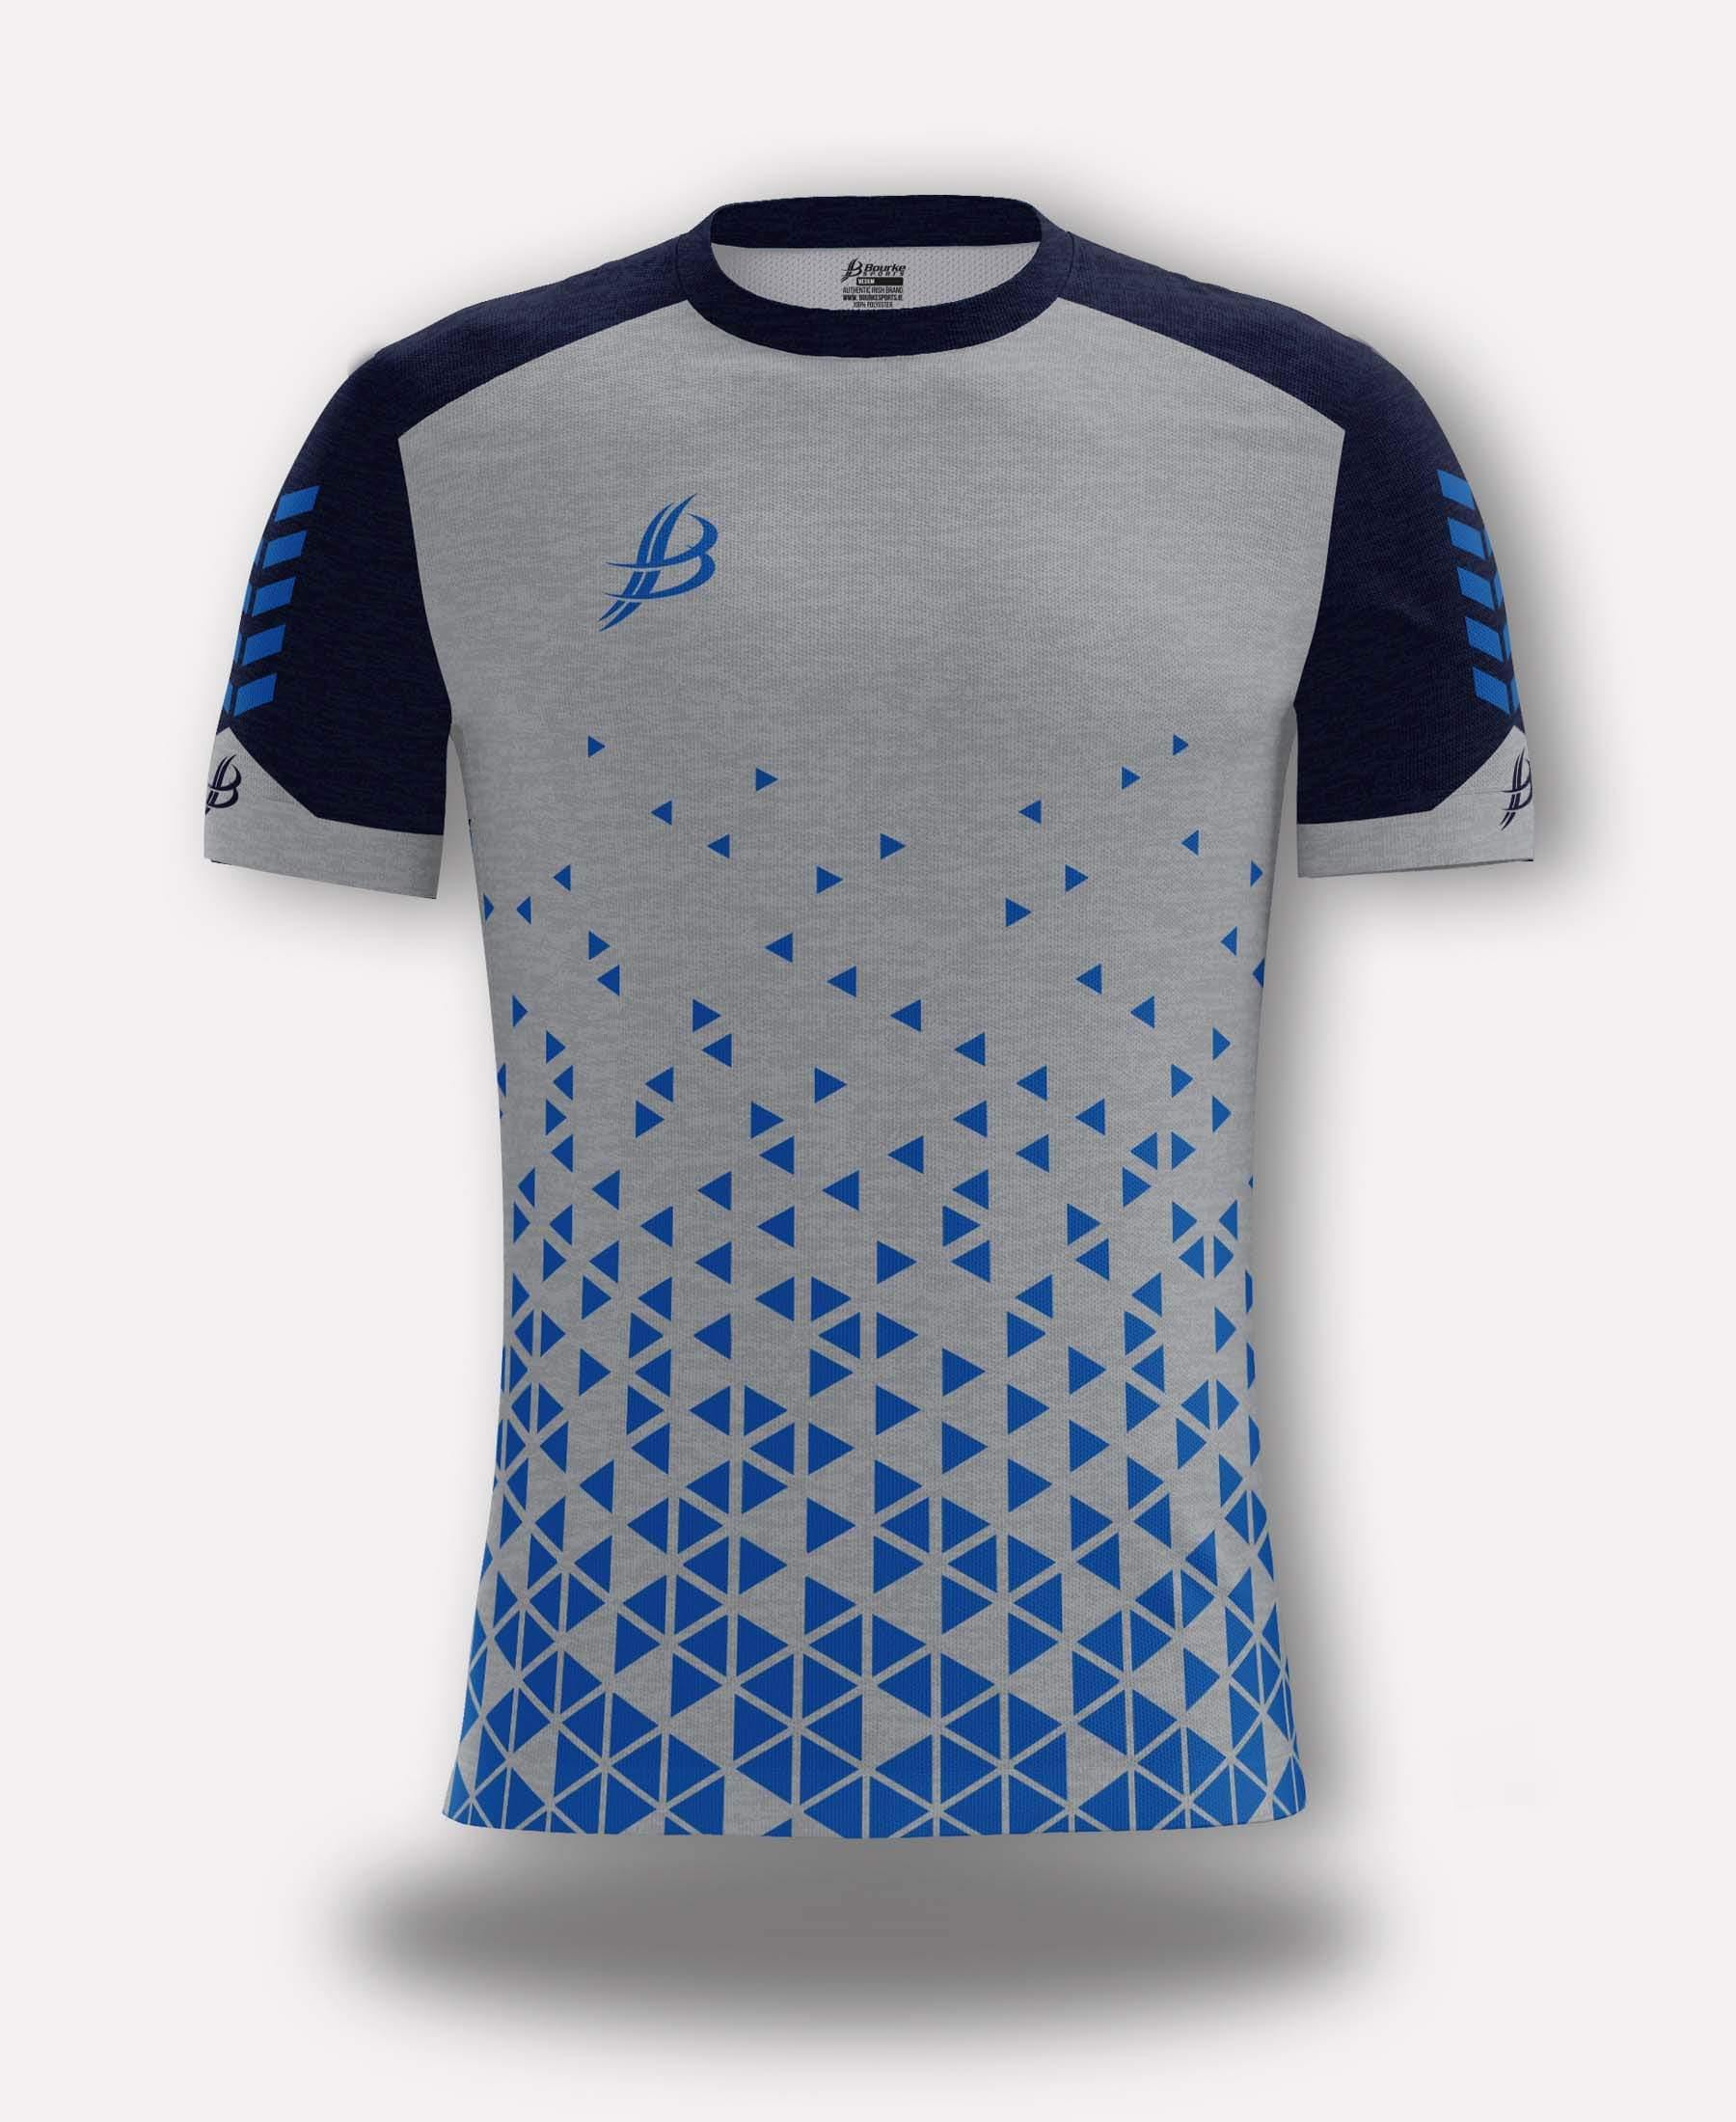 BUA20 Adult Jersey (Grey/Navy/Royal)